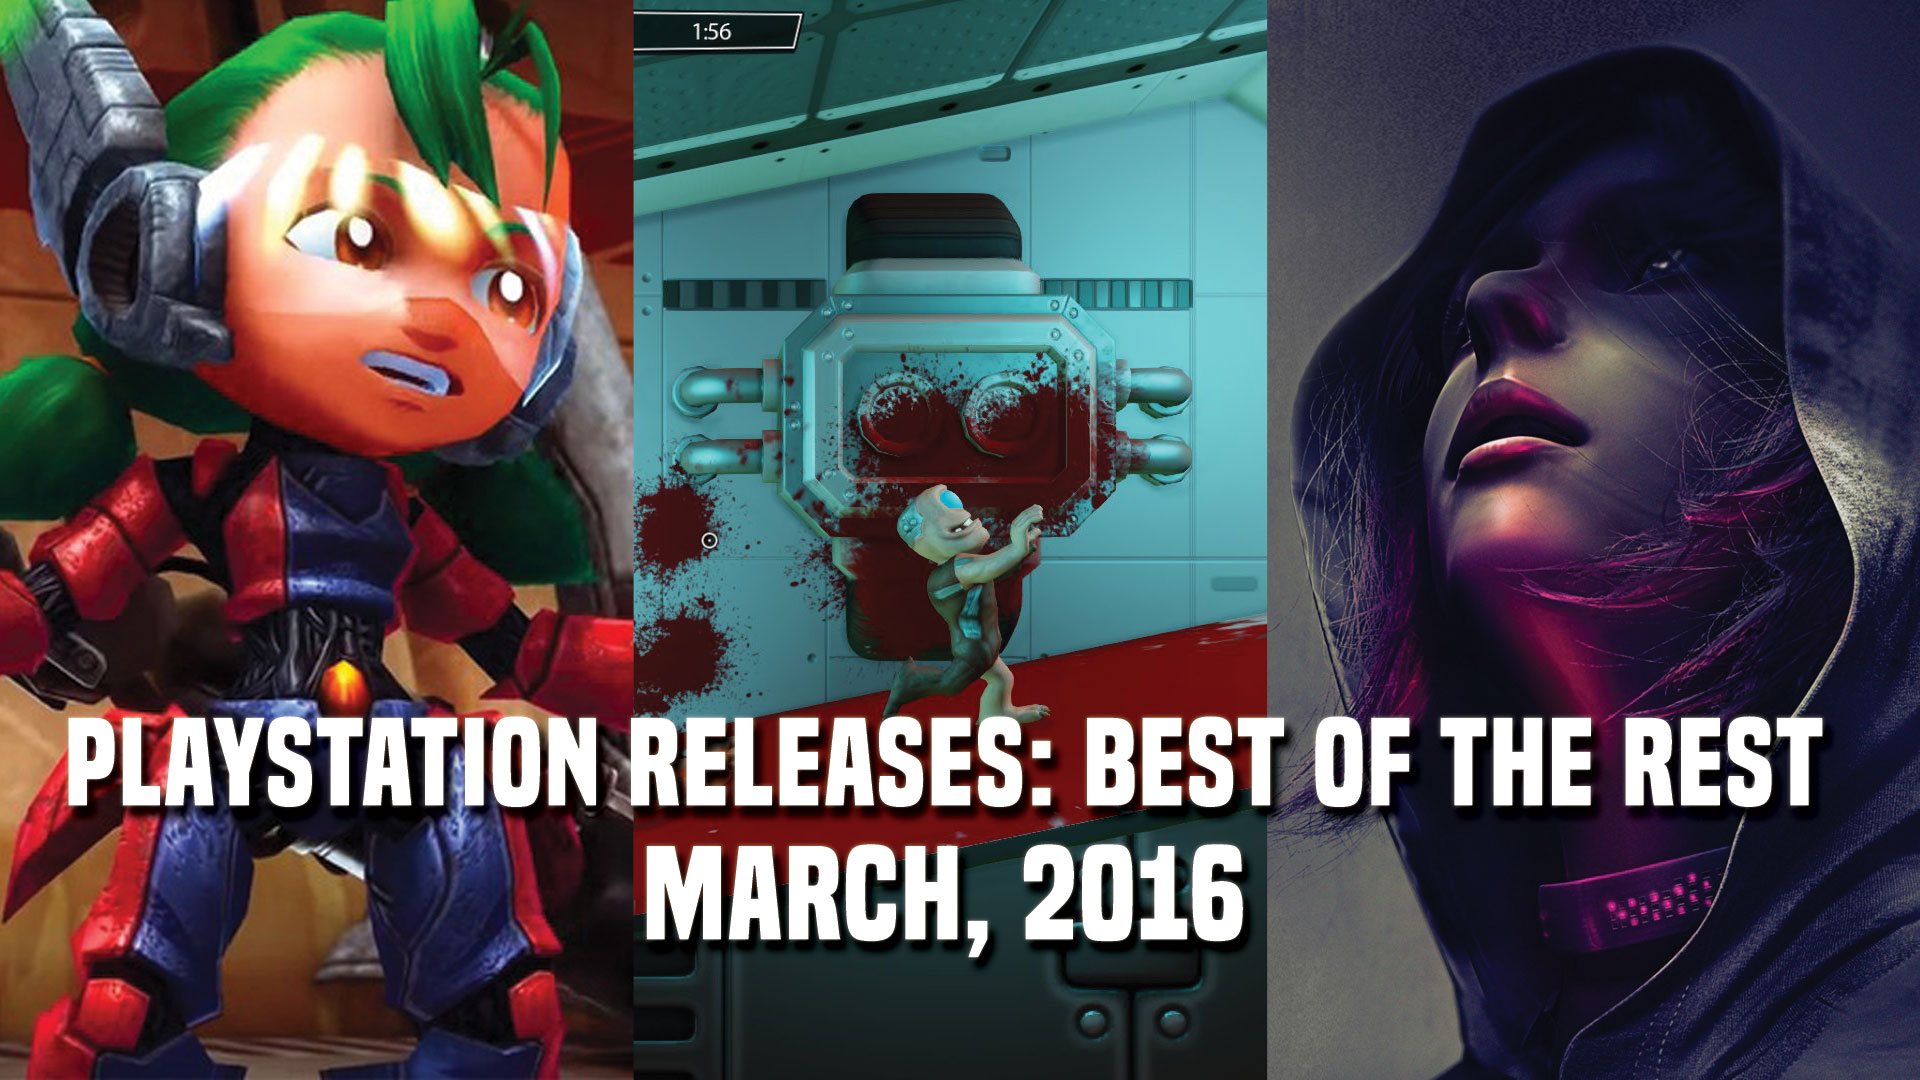 PlayStation Releases: Best of the Rest - March, 2016